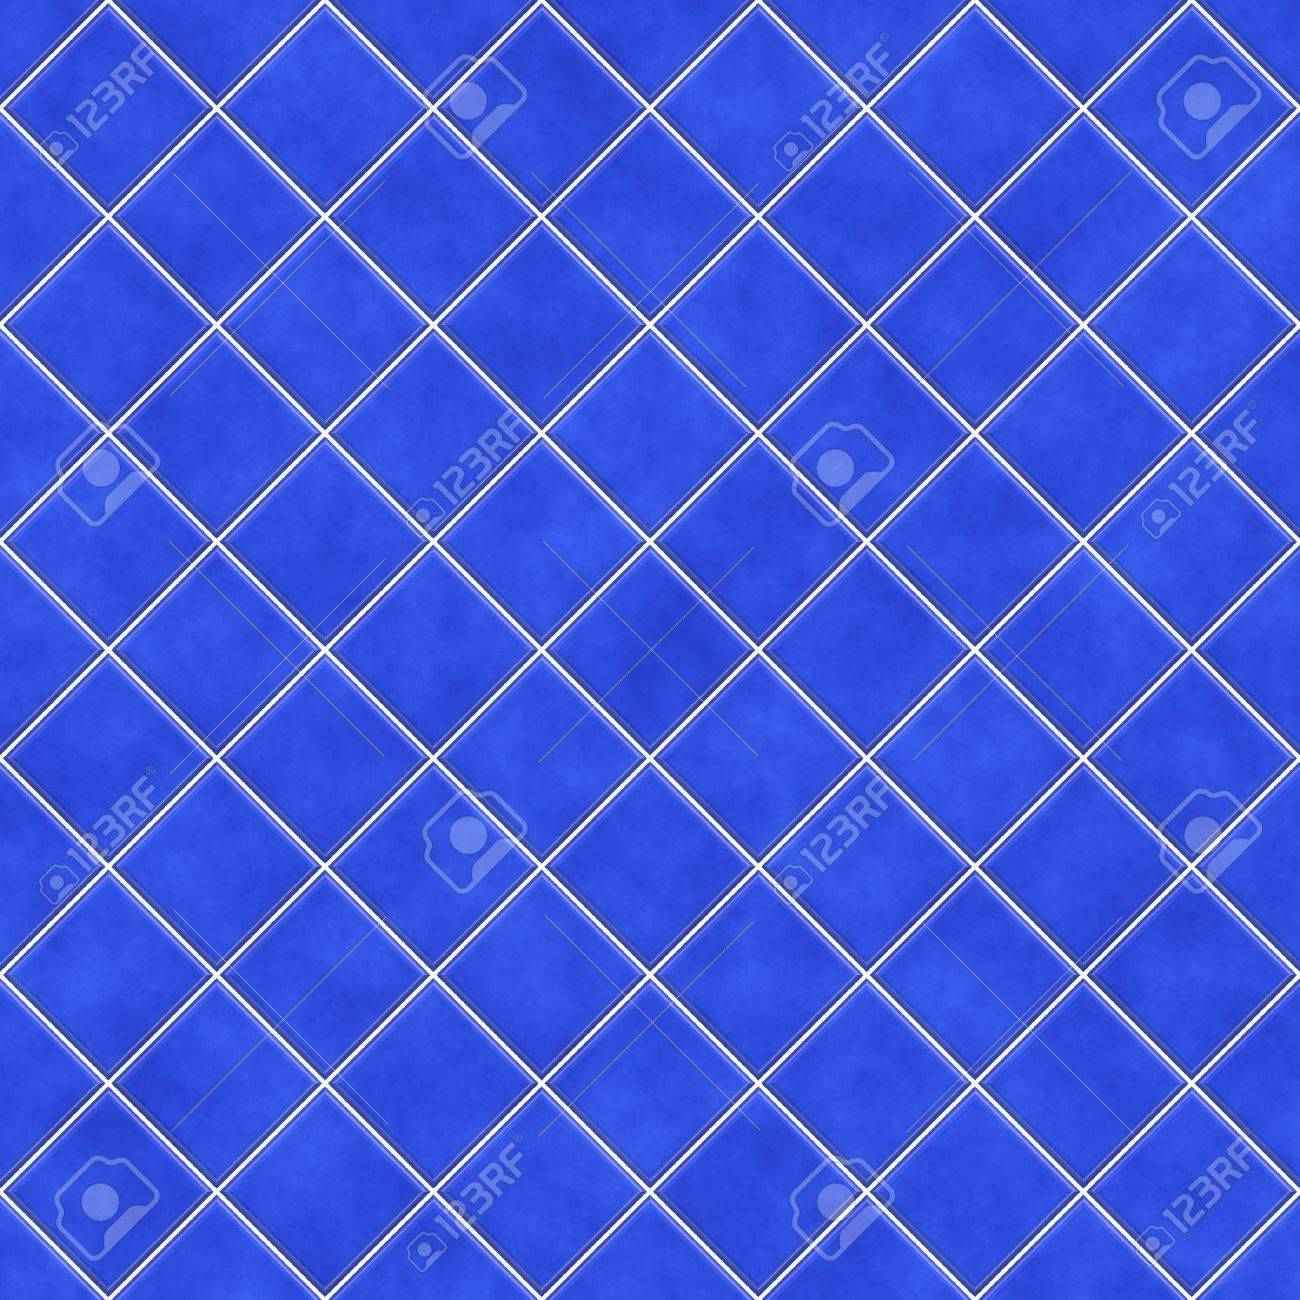 kitchen blue tiles texture. Blue Tiles Texture Background, Kitchen, Bathroom Or Pool Concept Stock Photo - 7306527 Kitchen T